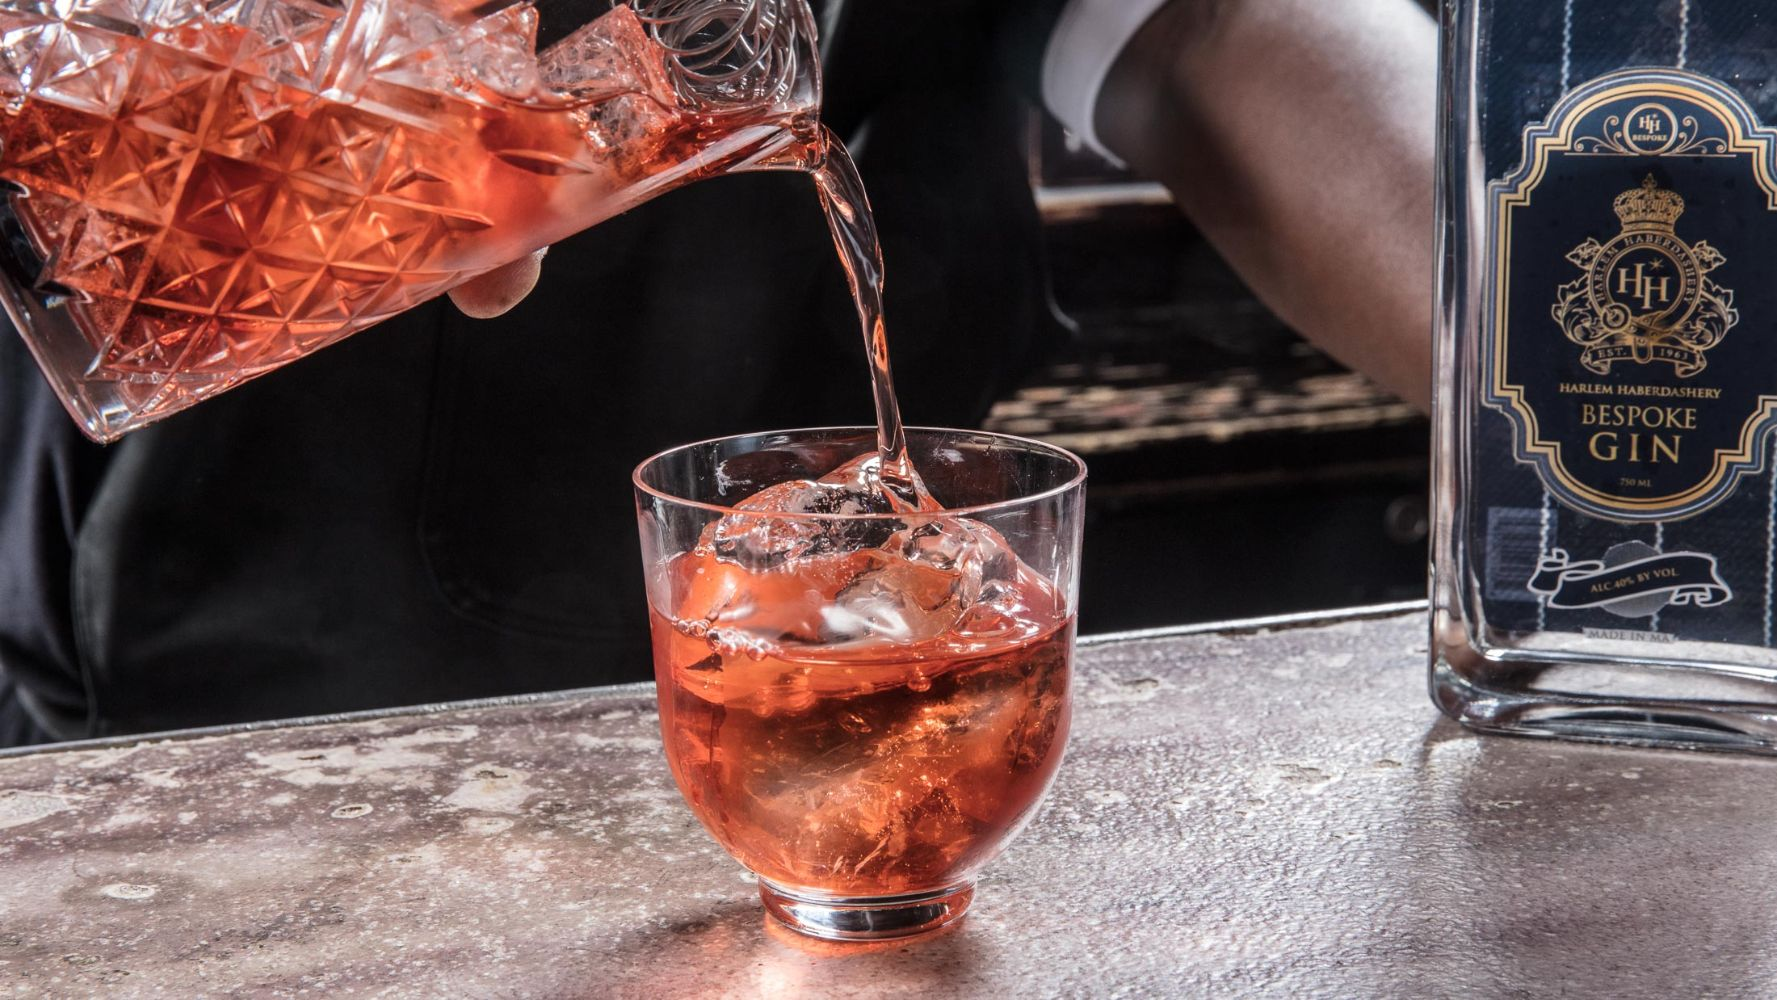 Close-up of a bartender pouring a negroni cocktail from a mixing glass into a rocks glass next to a bottle of HH Bespoke Gin.